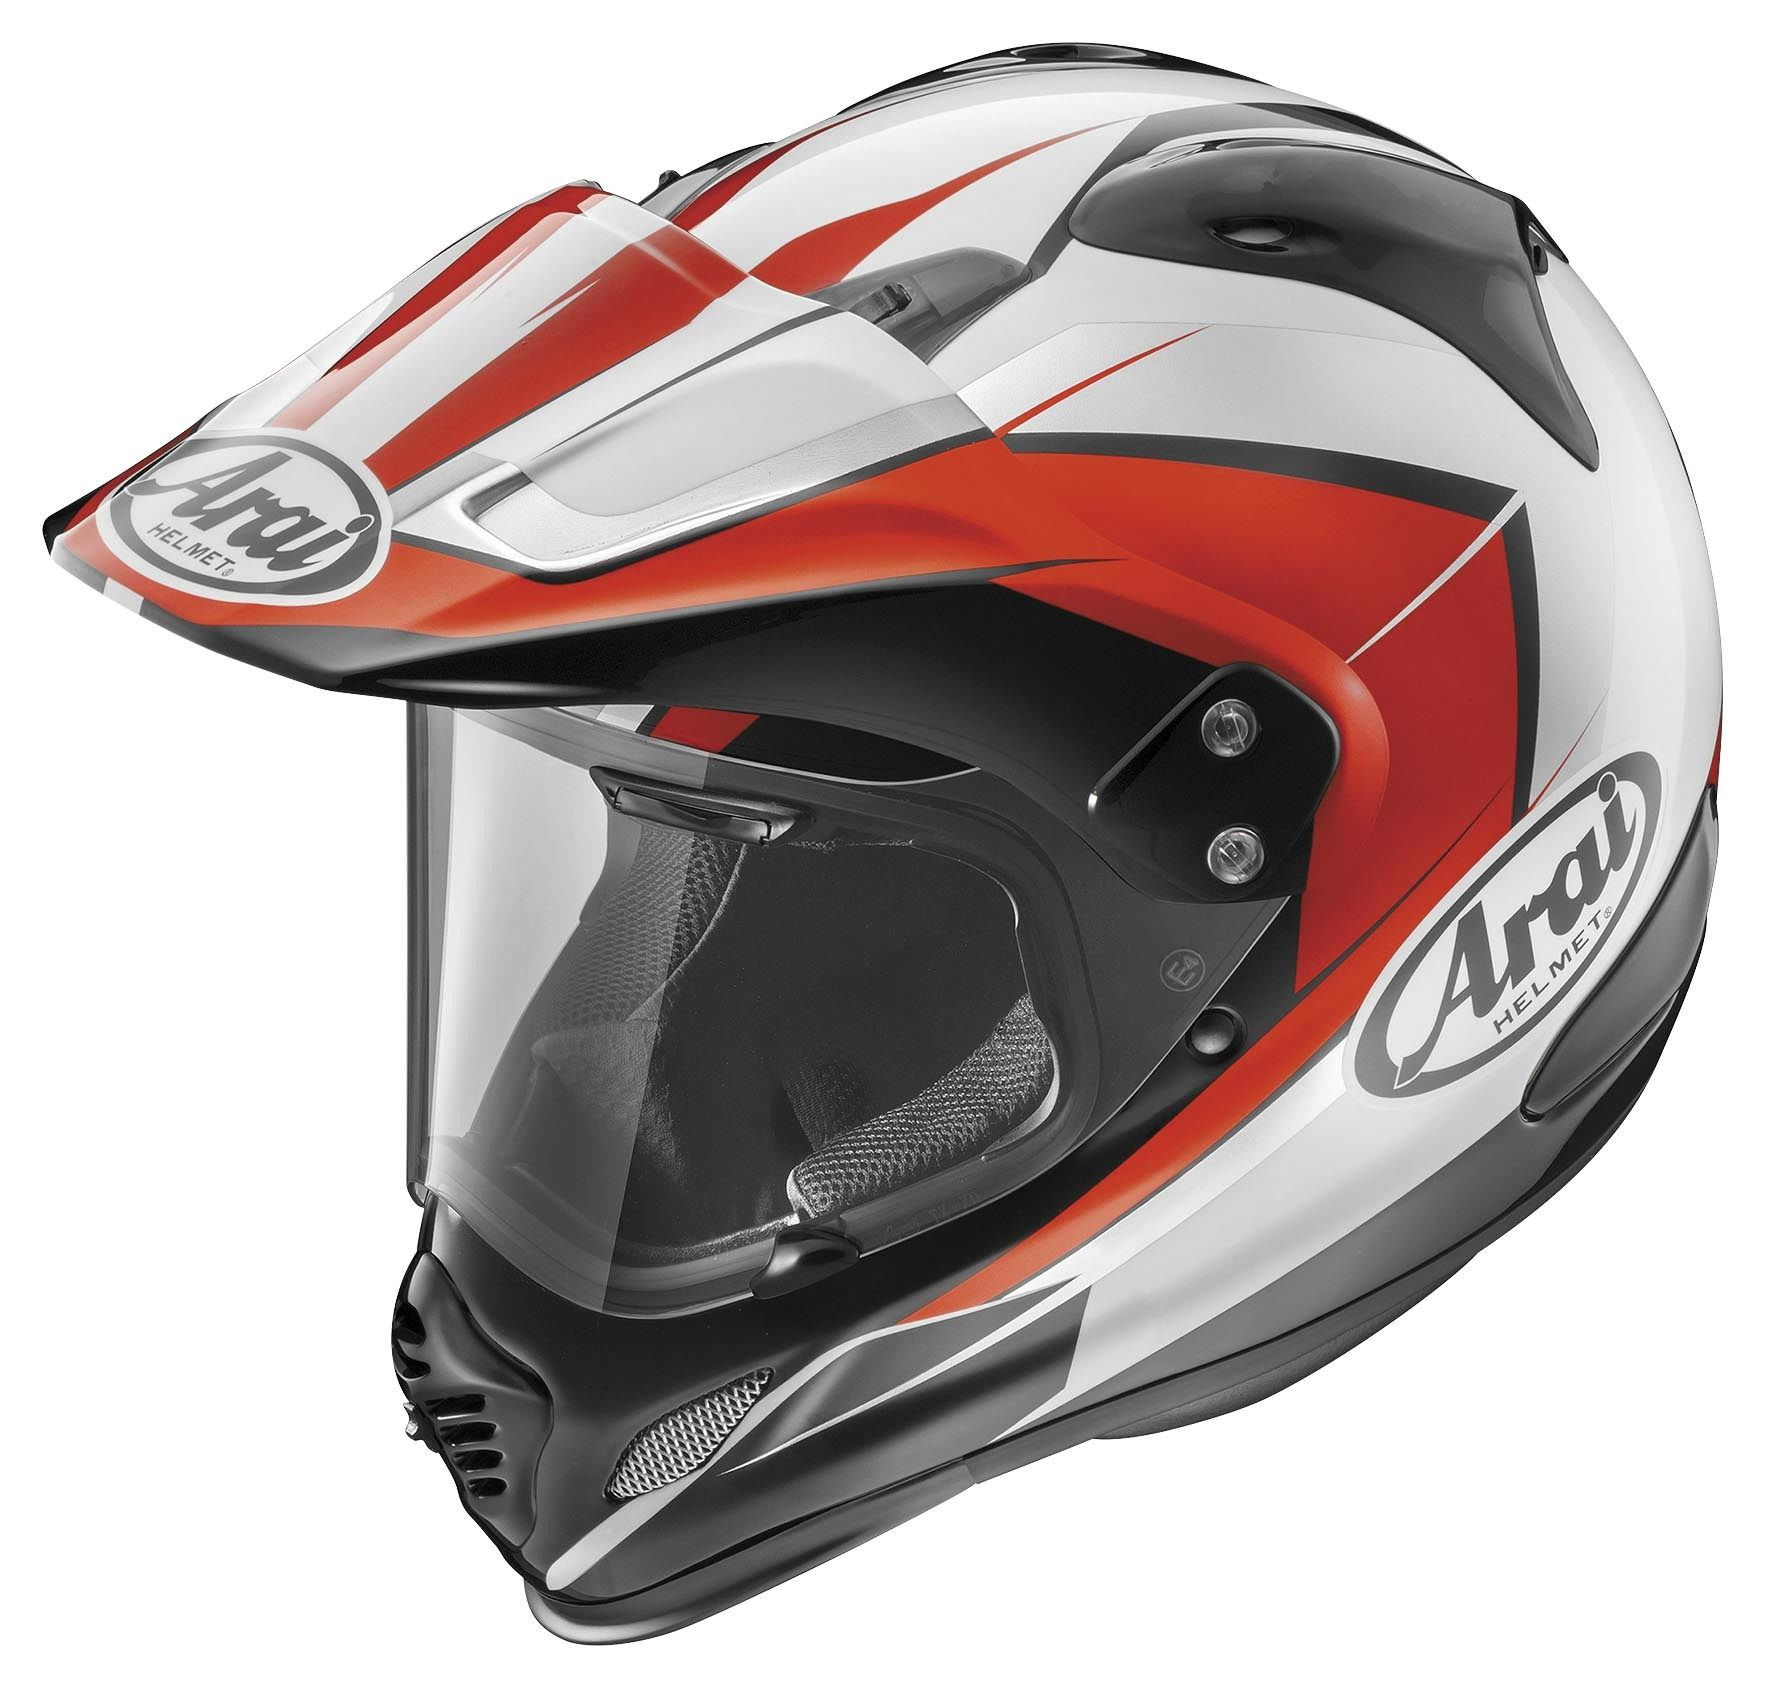 motorcycle helmets Provides honest reviews of the best motorcycle helmet for riding these helmets have dot certification to insure safety and your riding makes comfortable.